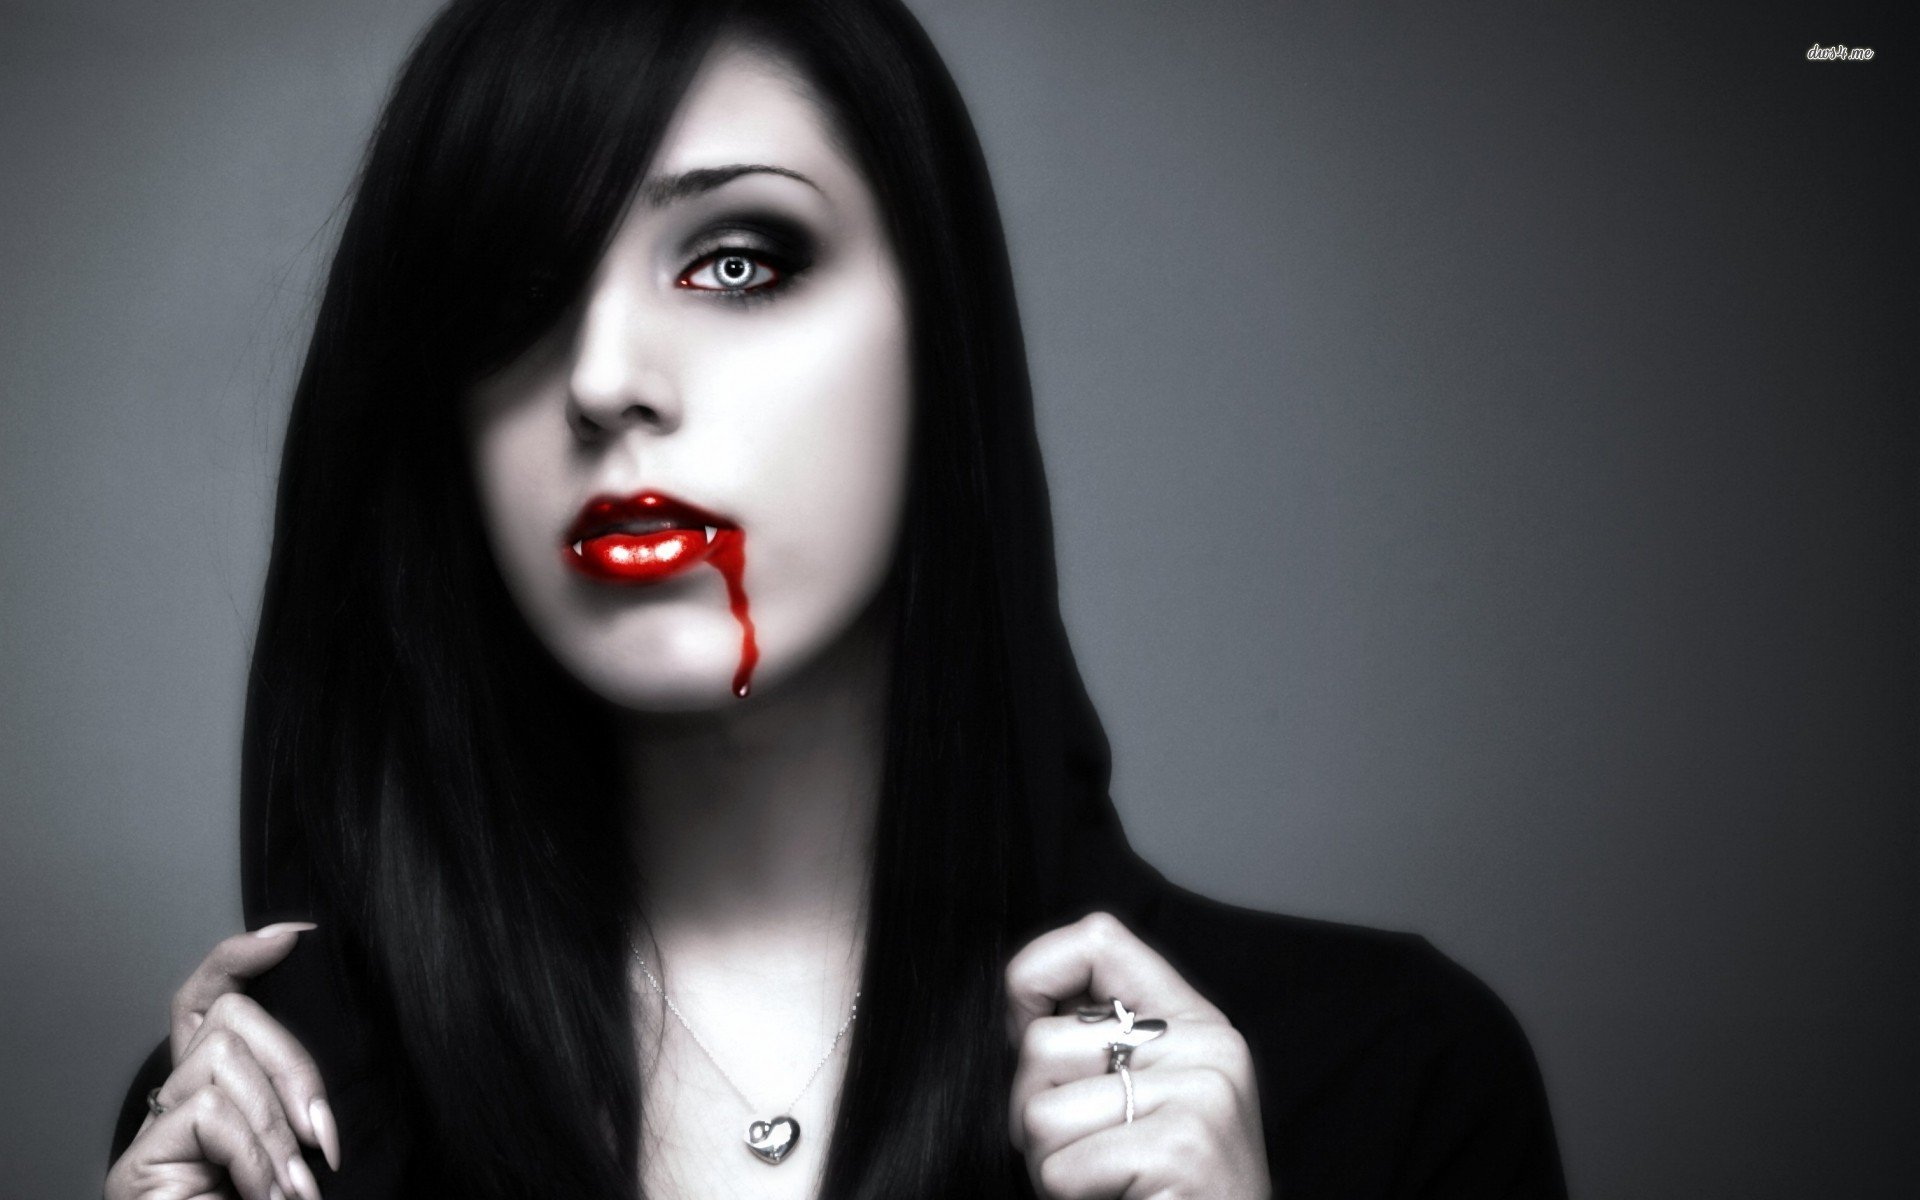 Vampire Woman Wallpaper